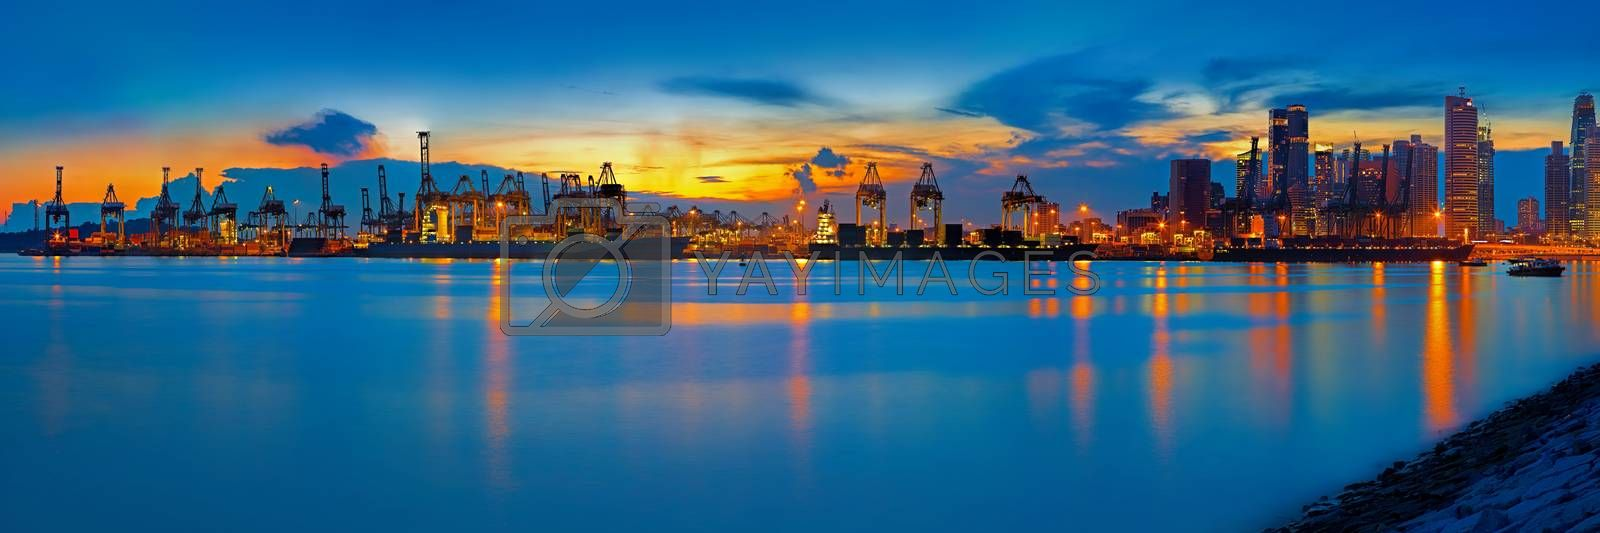 Port of Singapore by kjorgen